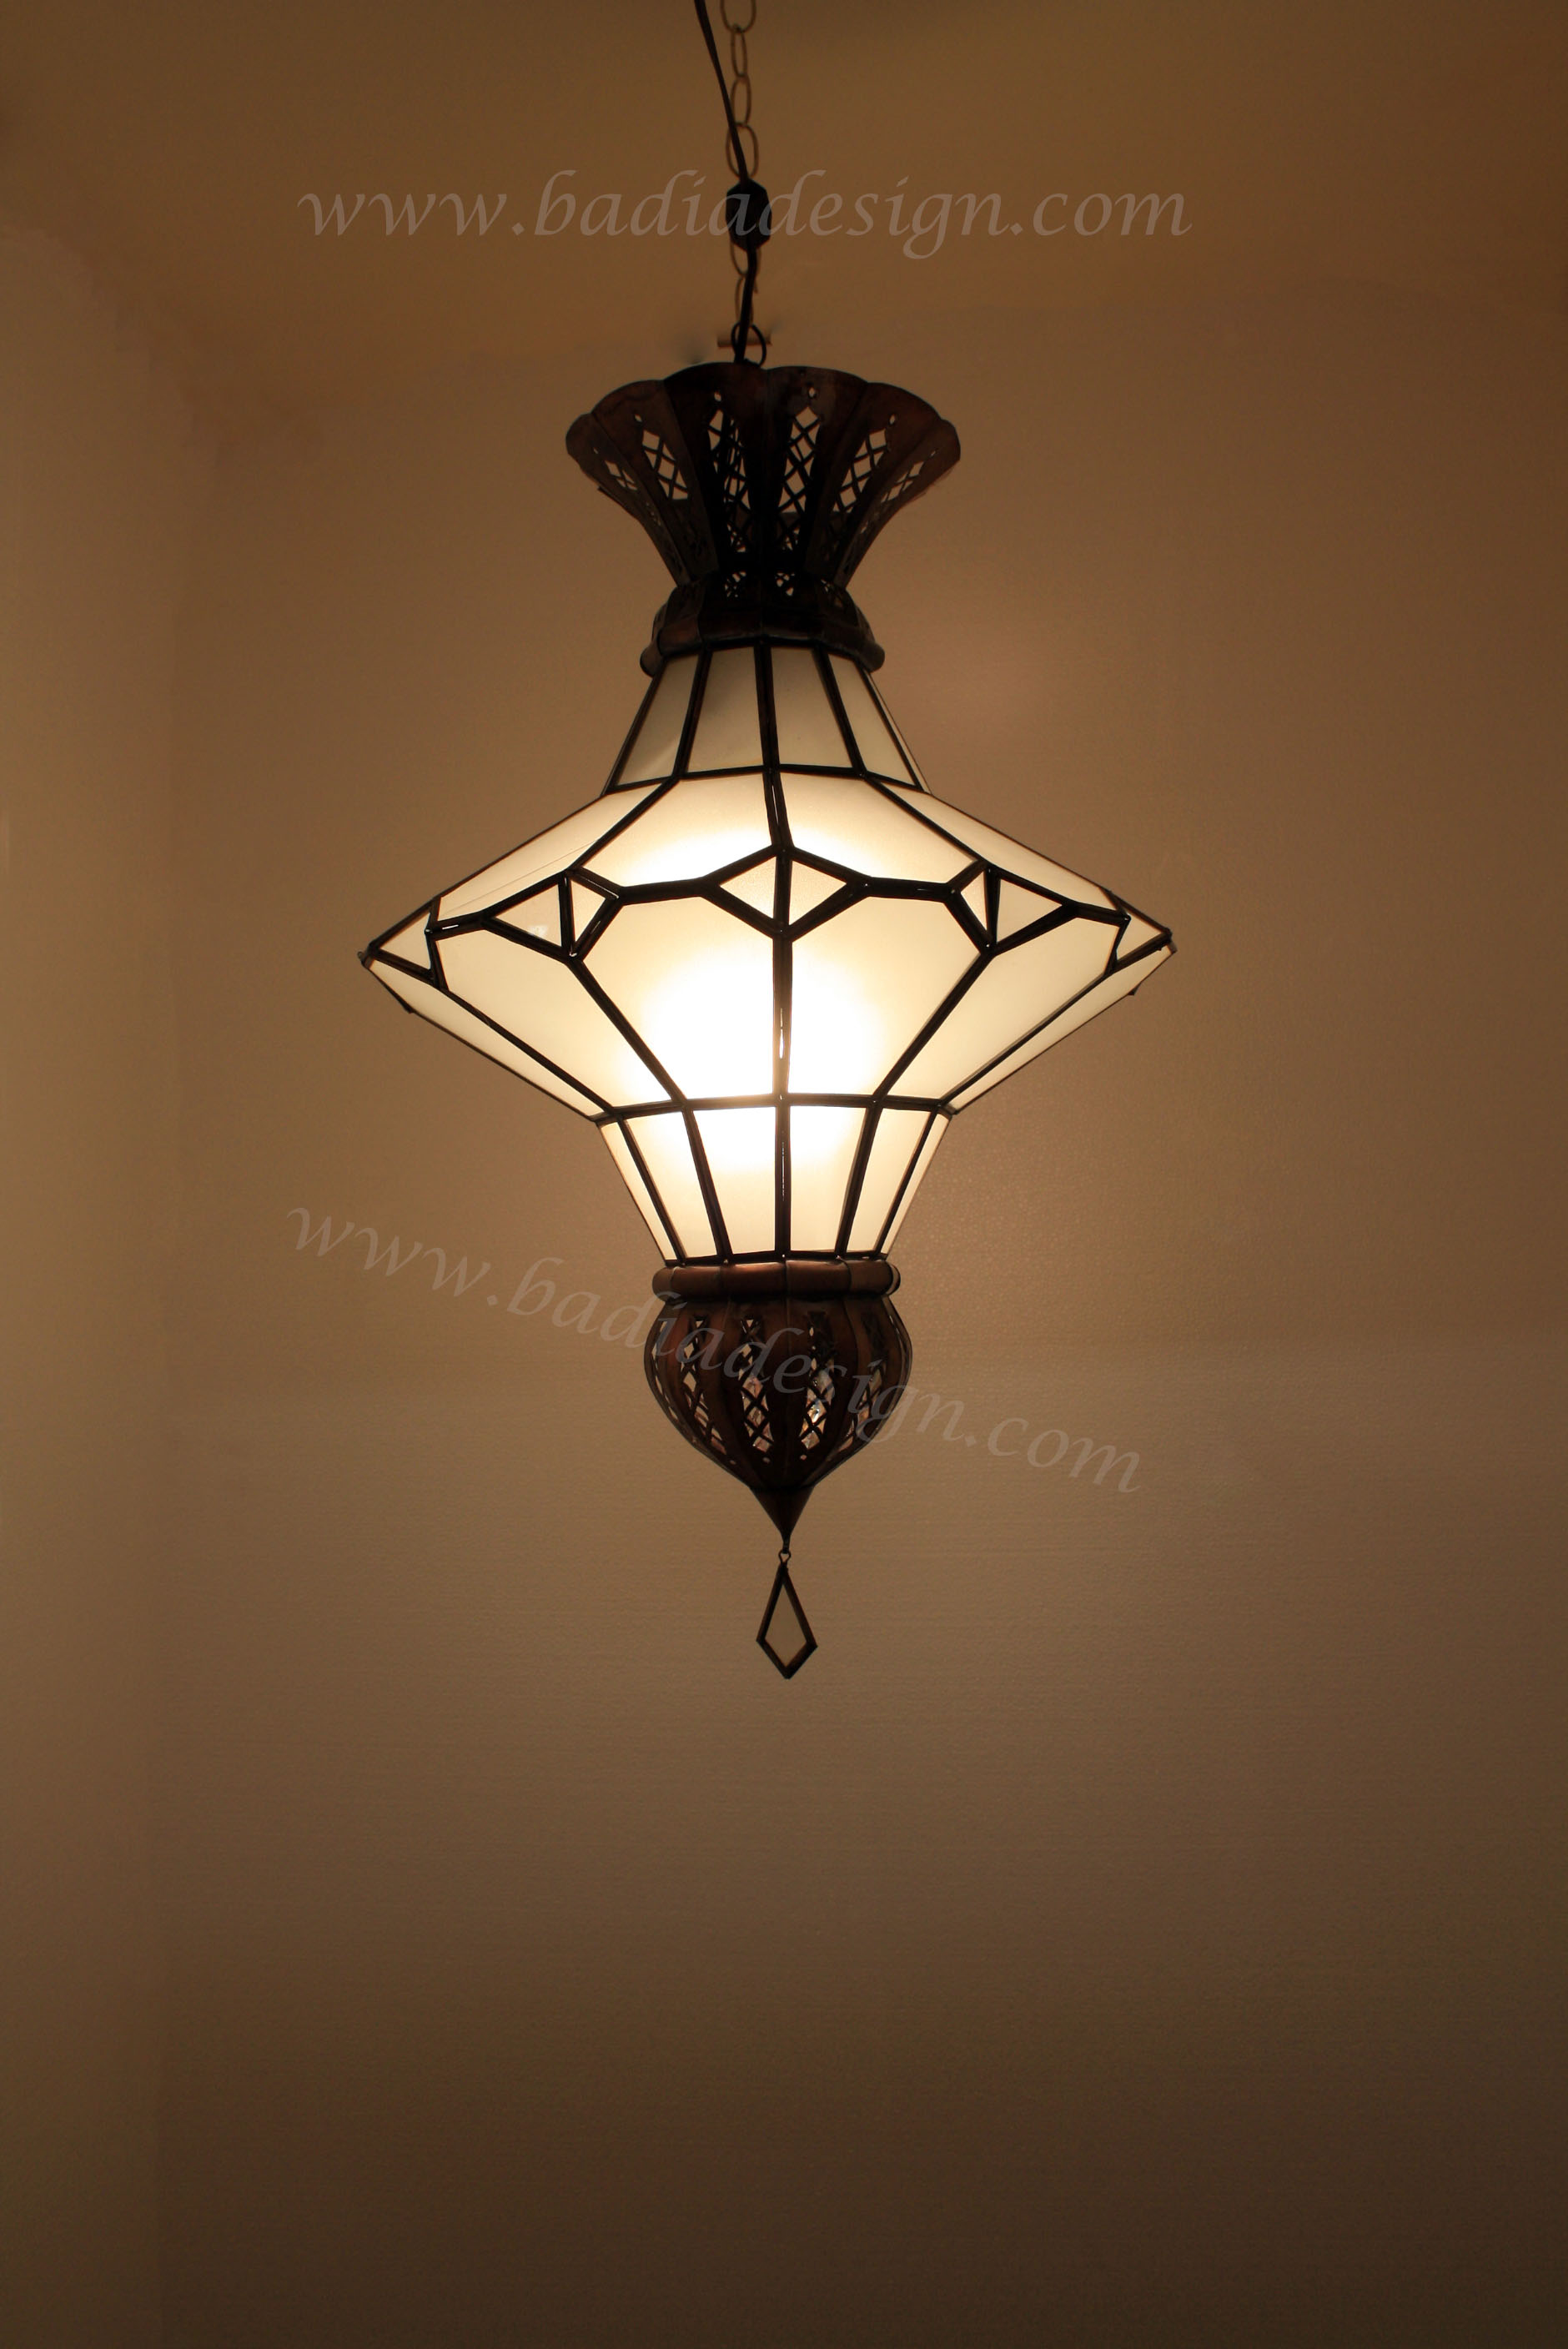 moroccan-lighting-miami.jpg